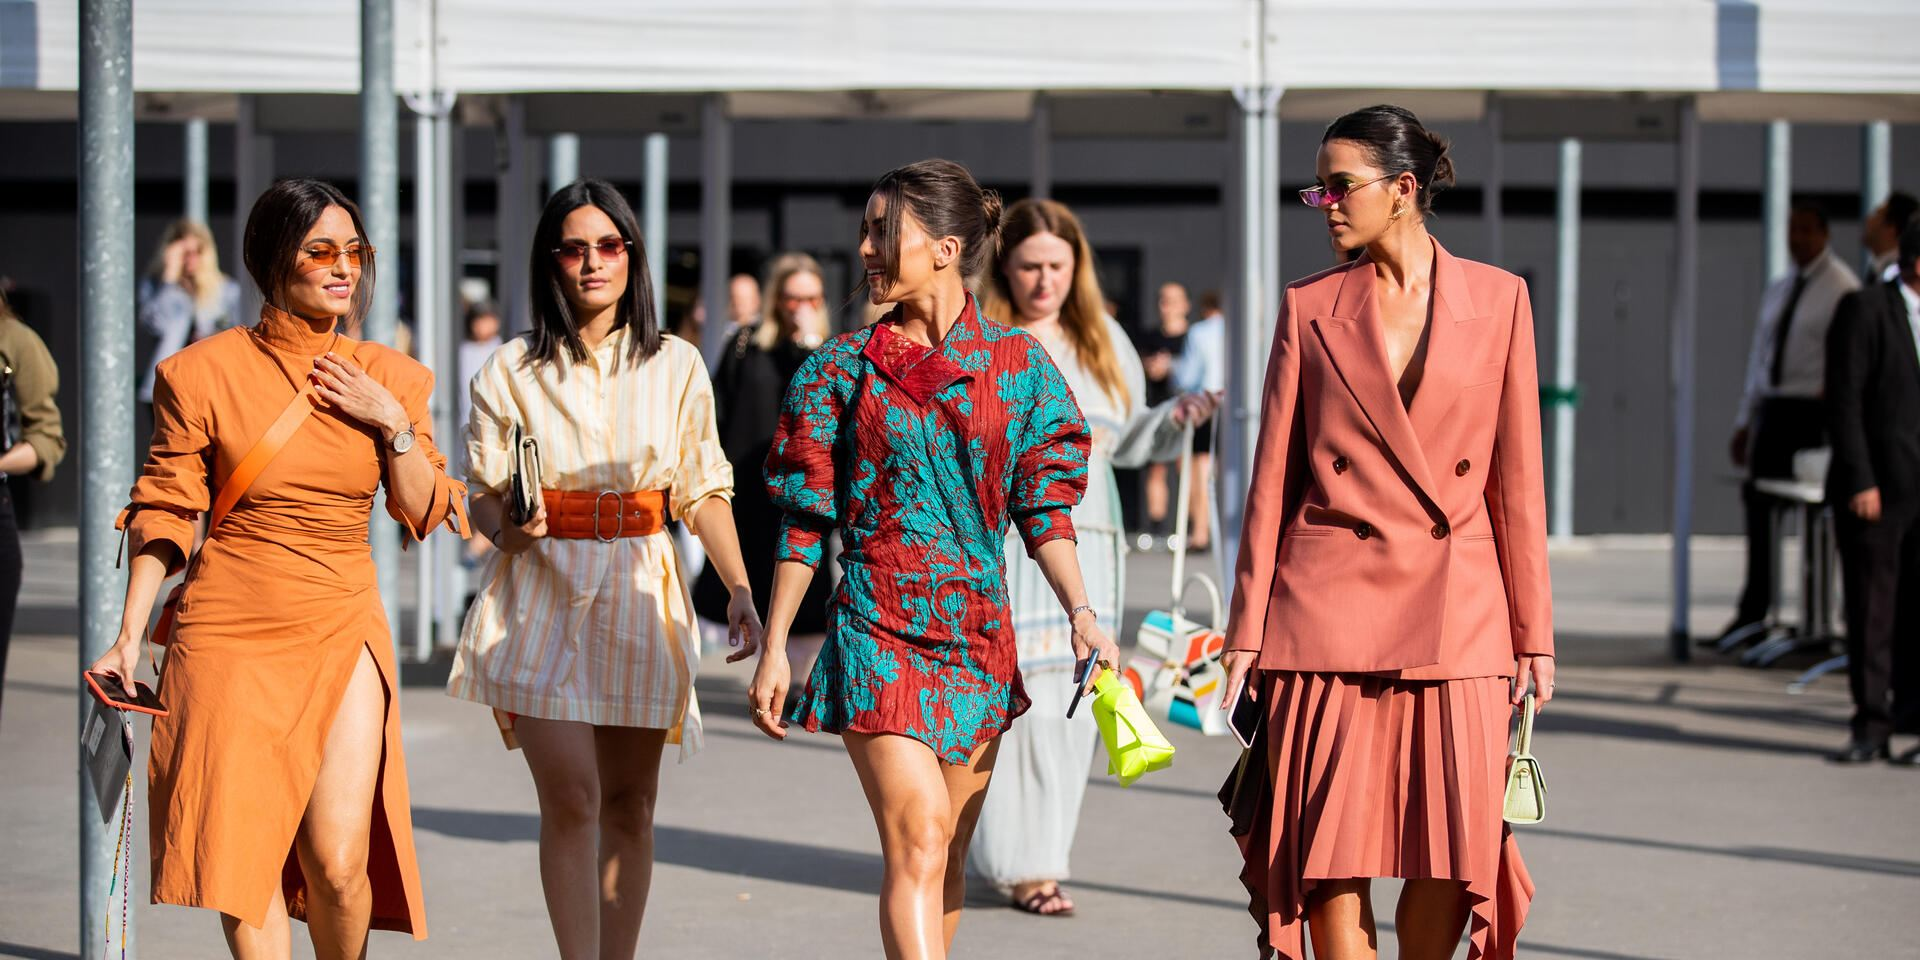 PARIS, FRANCE - JUNE 30: Andrea Wazen wearing yellow belted striped button shirt Karen Wazen is seen wearing orange dress, Camila Coelho and Bruna Marquezine outside Acne during Paris Fashion Week - Haute Couture Fall/Winter 2019/2020 on June 30, 2019 in Paris, France. (Photo by Christian Vierig/Getty Images)